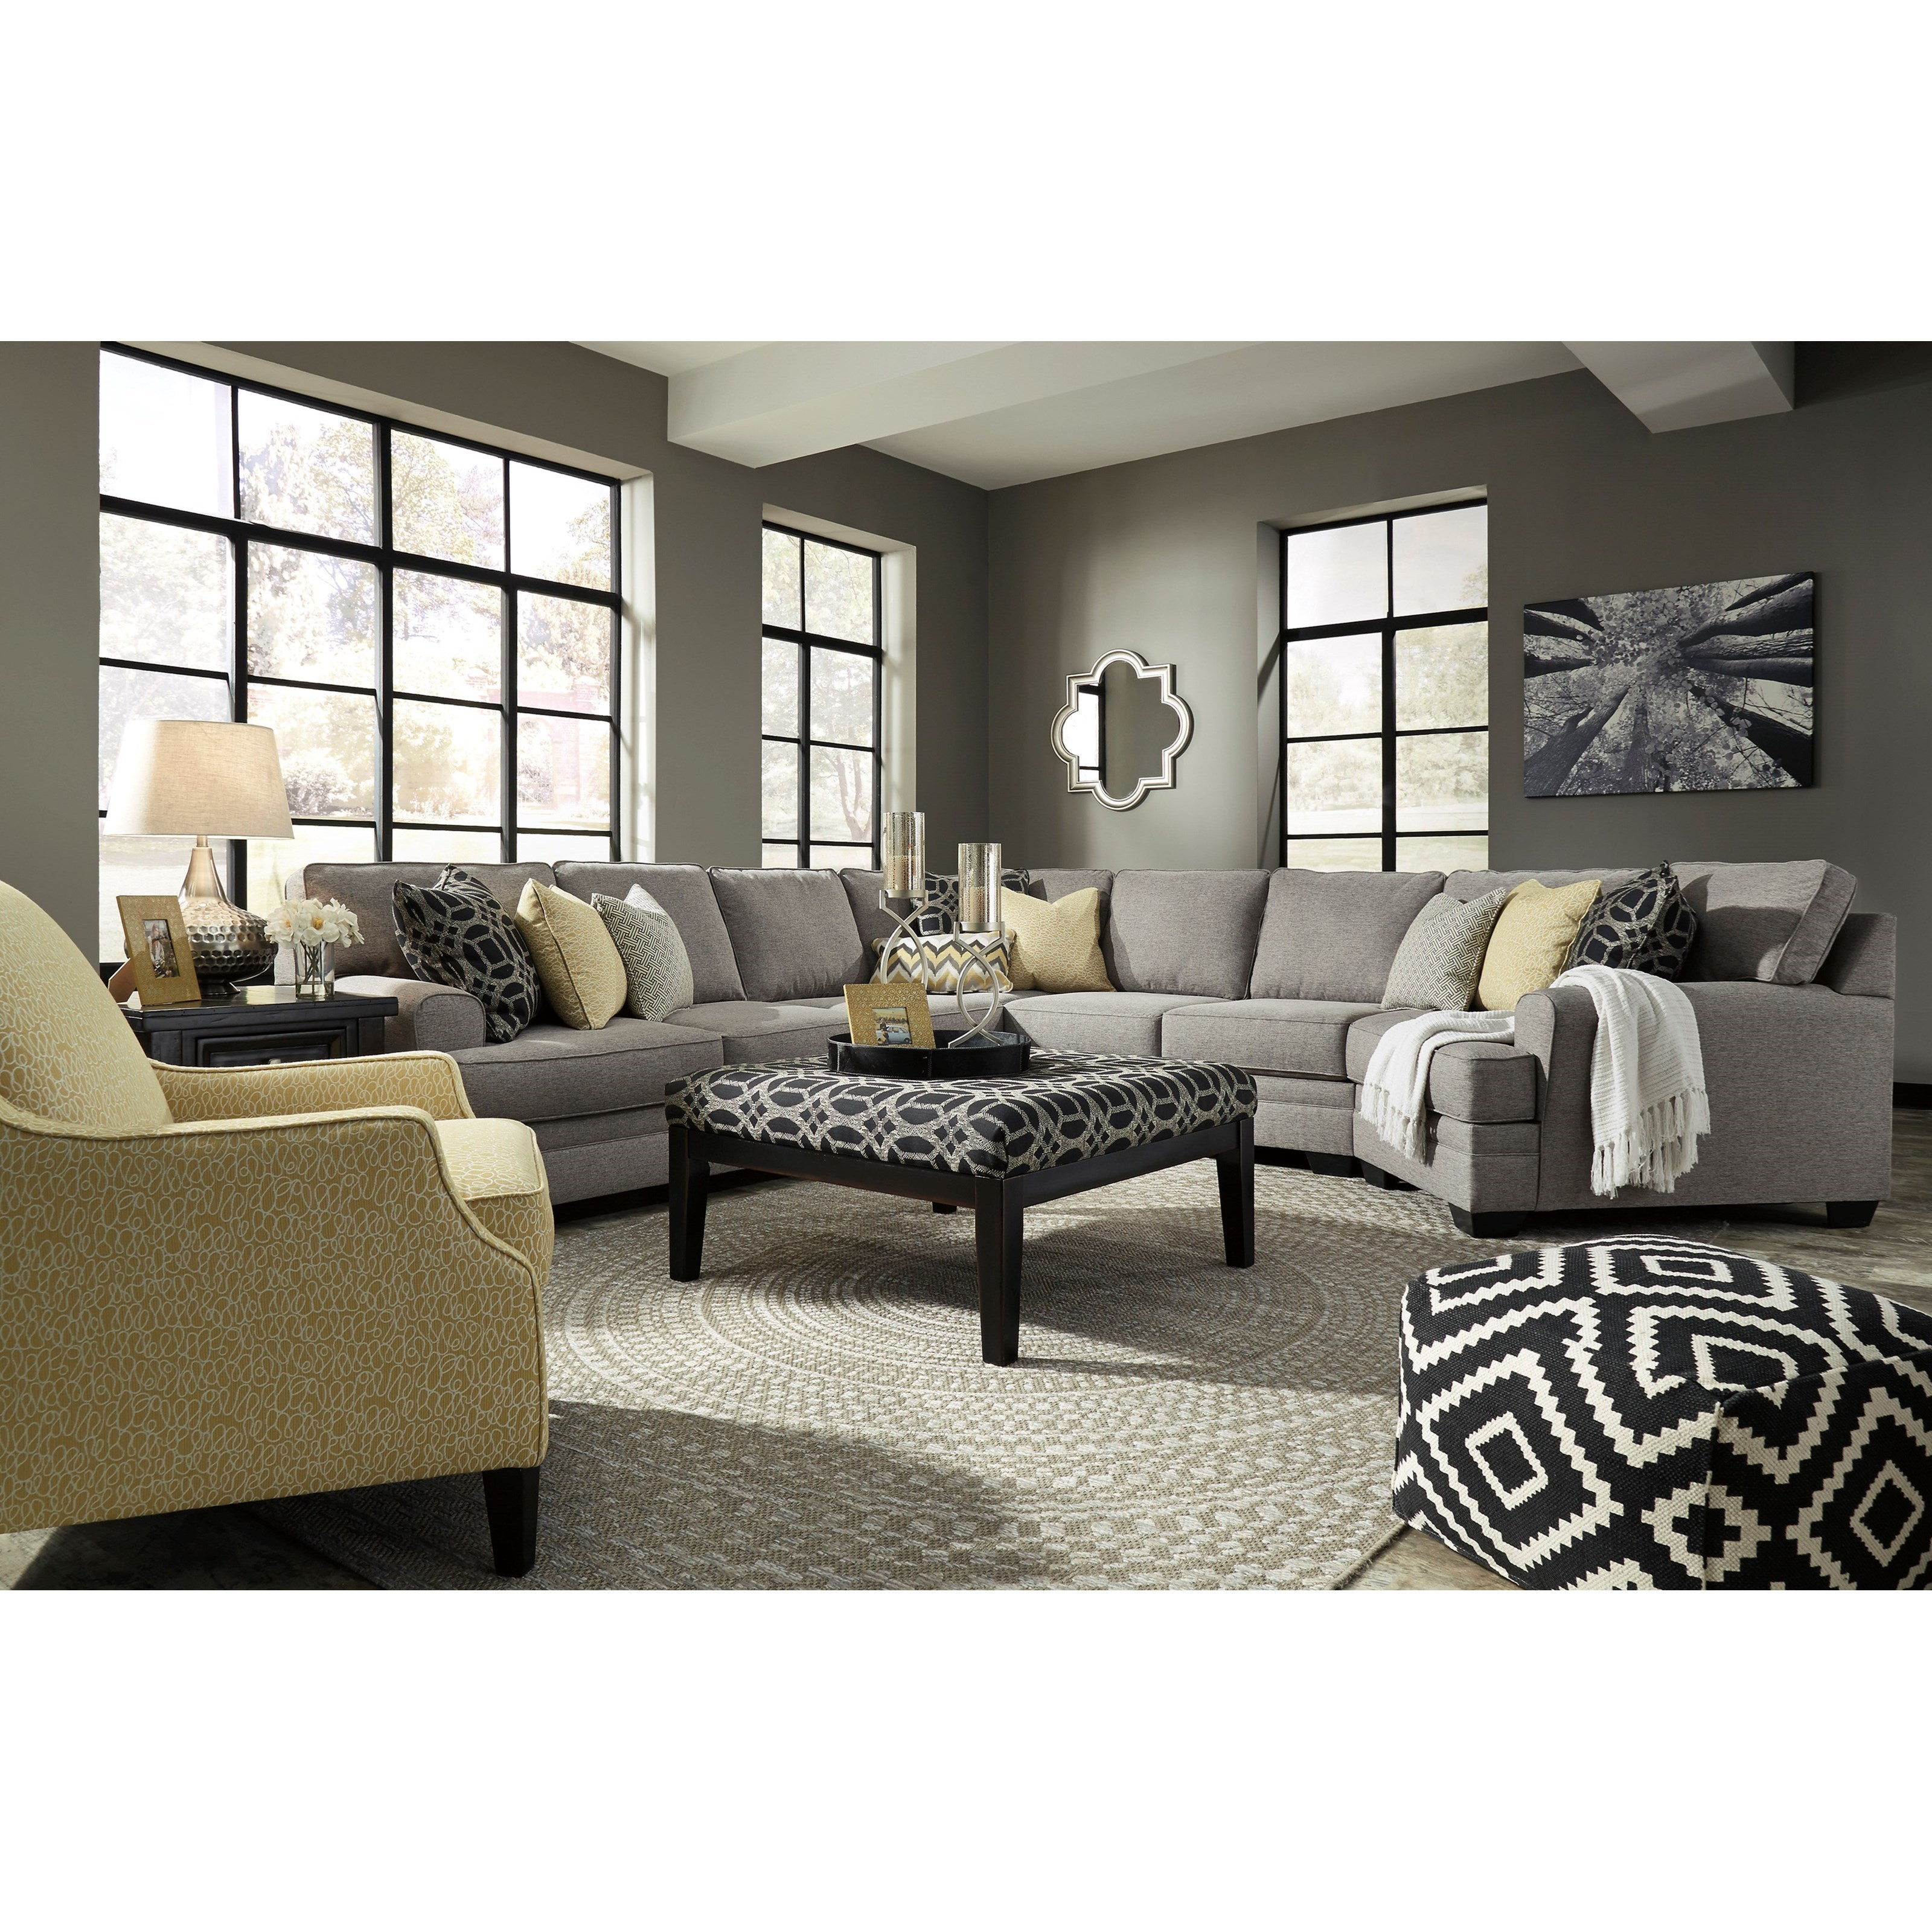 Benchcraft Cresson Stationary Living Room Group Value